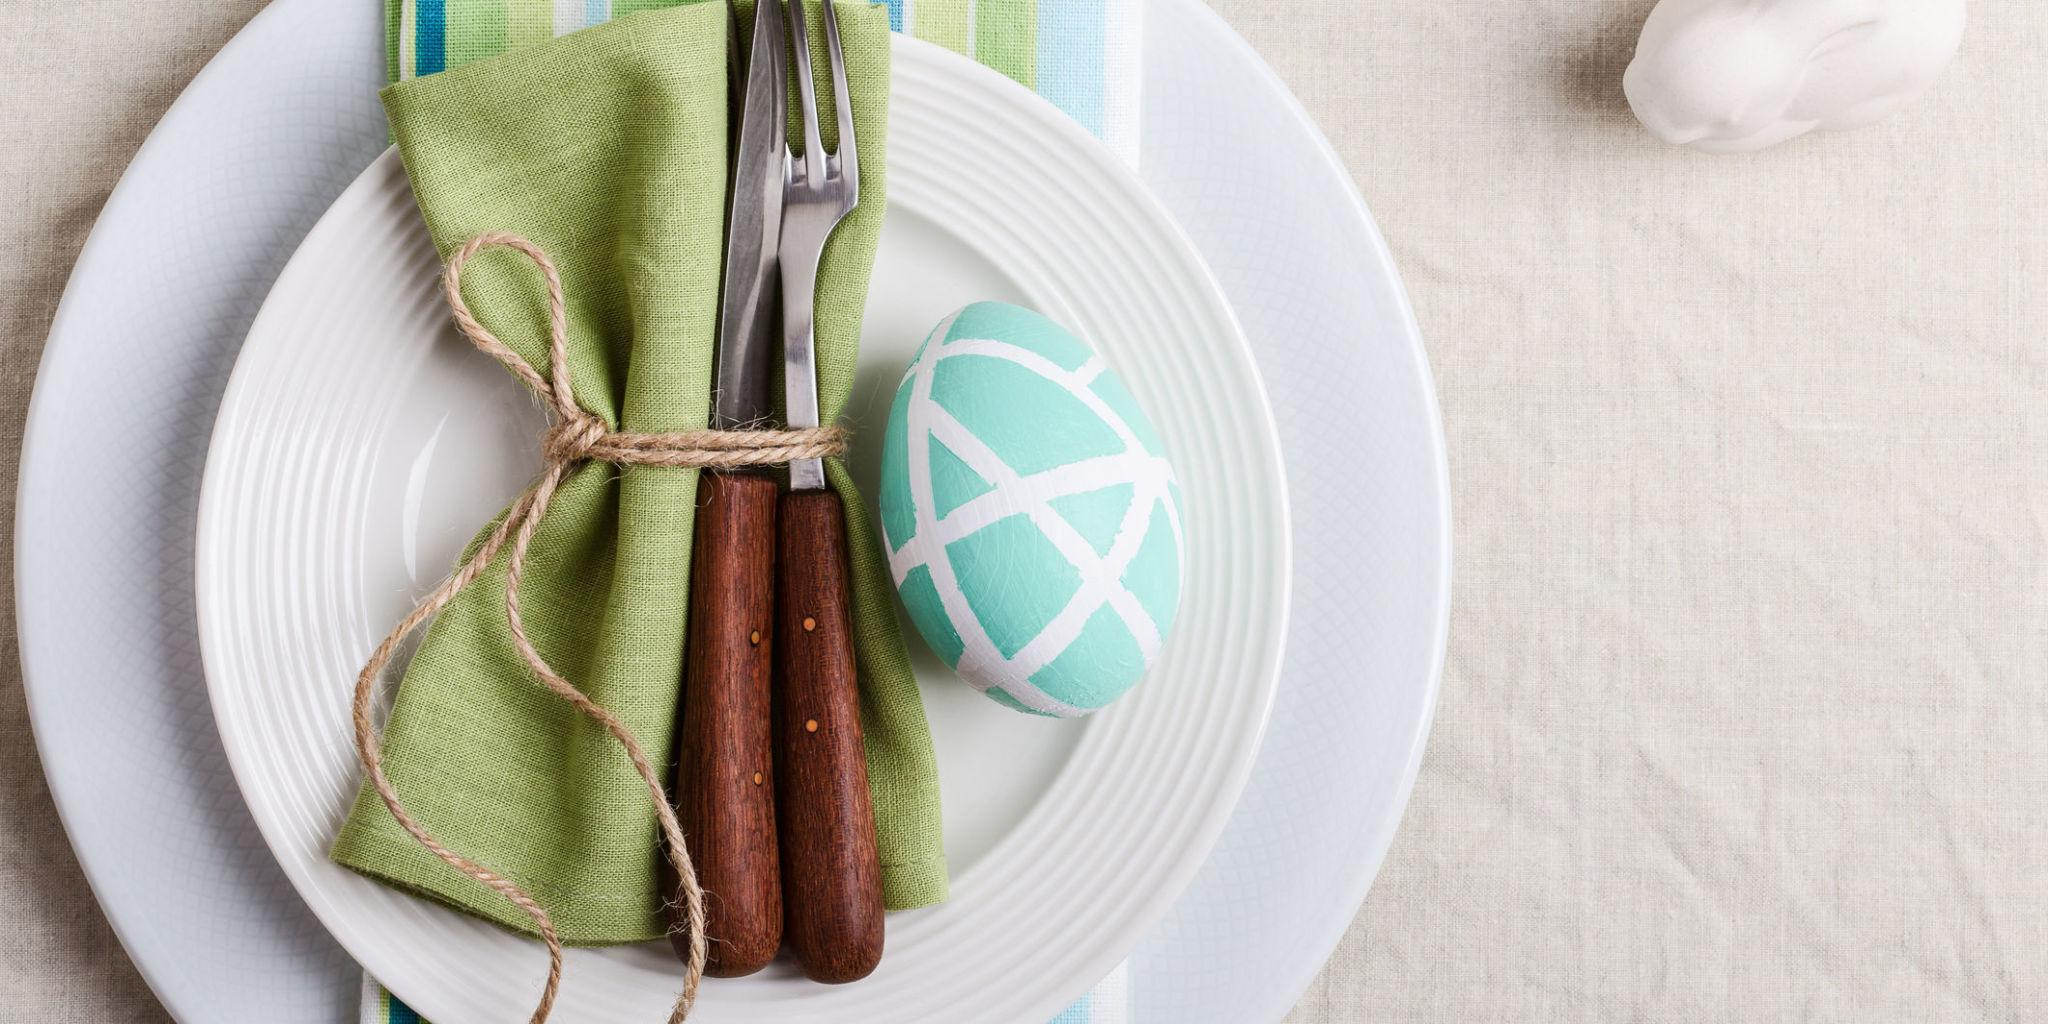 These Restaurants Will Be Open On Easter Sunday